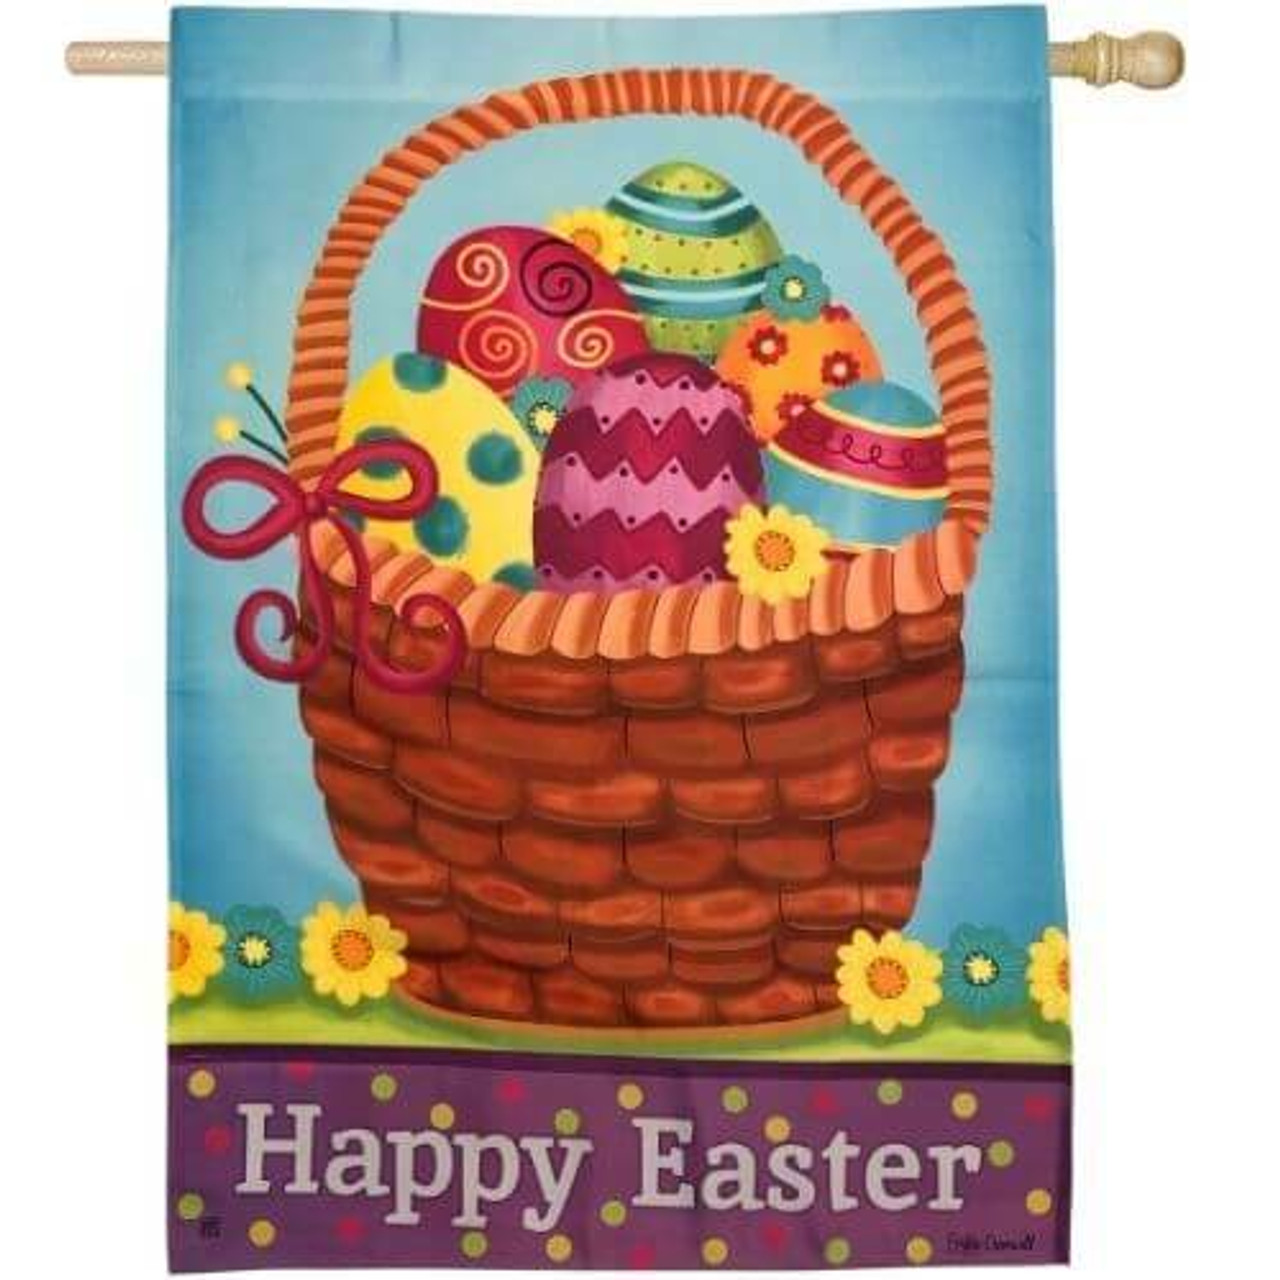 Brown weave basket with differently decorated easter eggs on bright green grass. Easter egg decoration colors are are pink, teal, orange, green, and yellow. There are yellow and teal flowers placed on the basket and background. The background is a light blue color. The words Happy Easter are written at the bottom of the flag with a purple background. There are are pink, green, and yellow polka-dots behind the text.